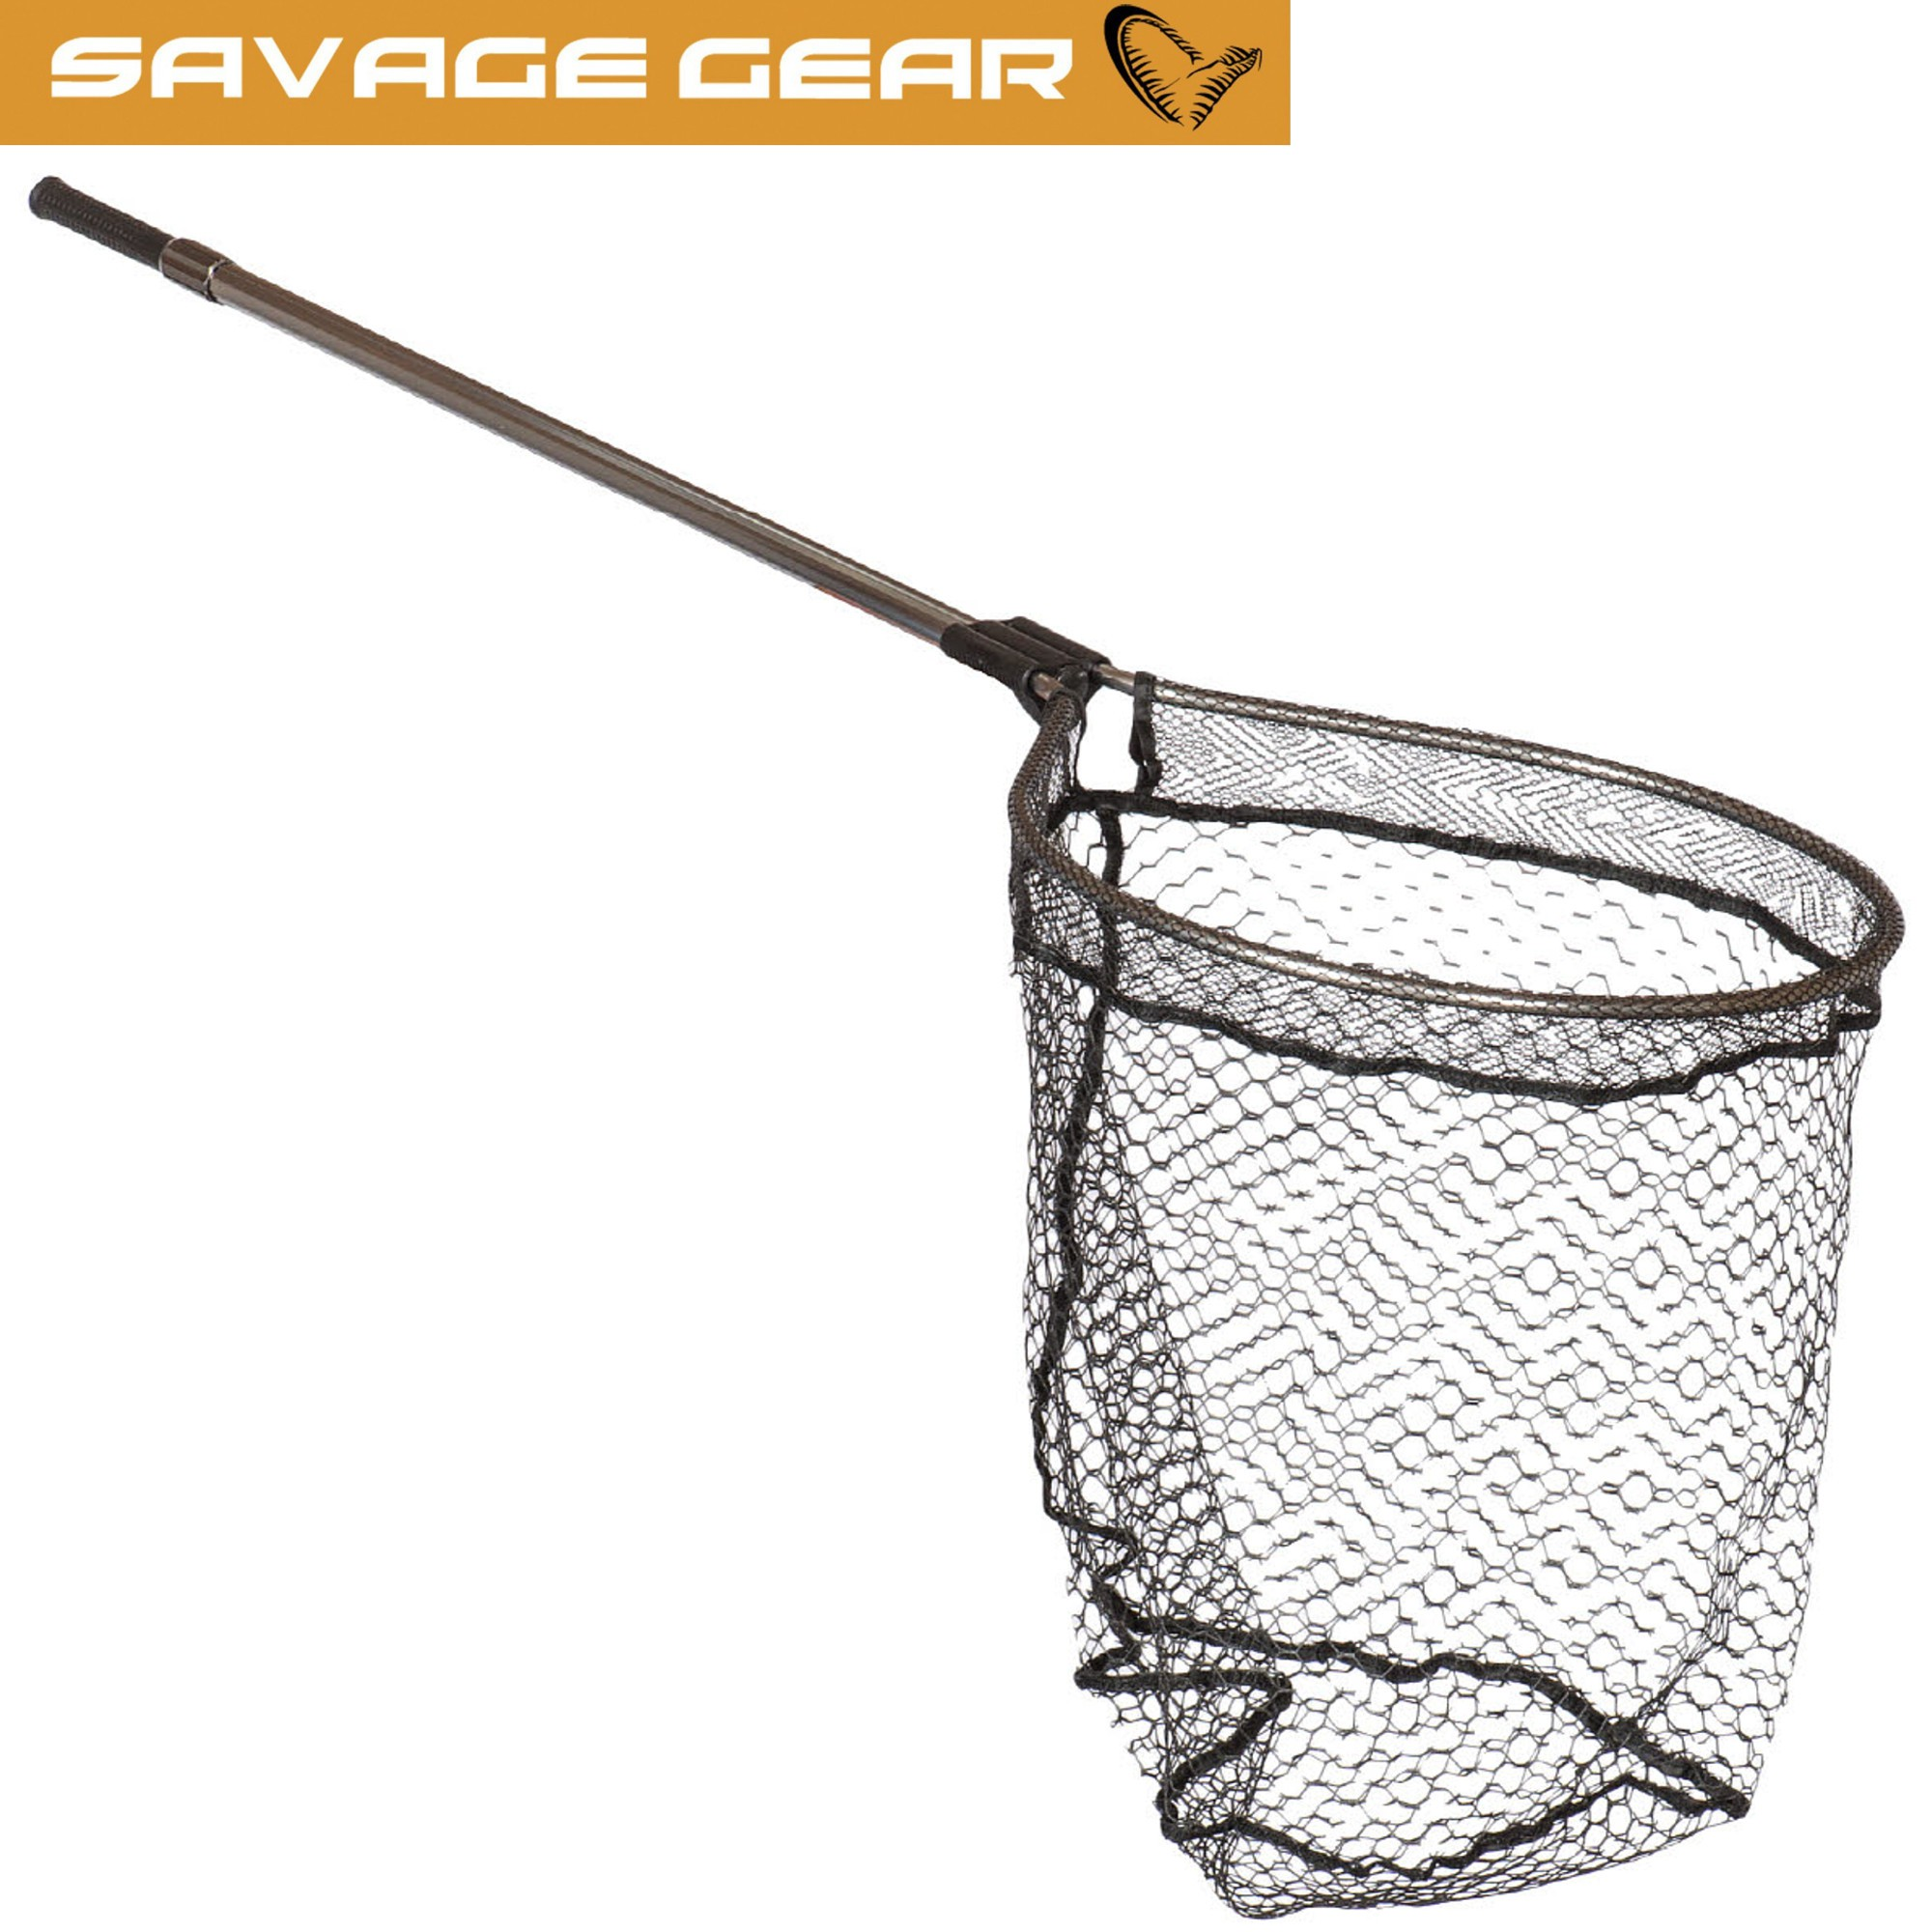 Savage Gear Full Frame Oval Landing Net 46x56cm - Unterfangkescher